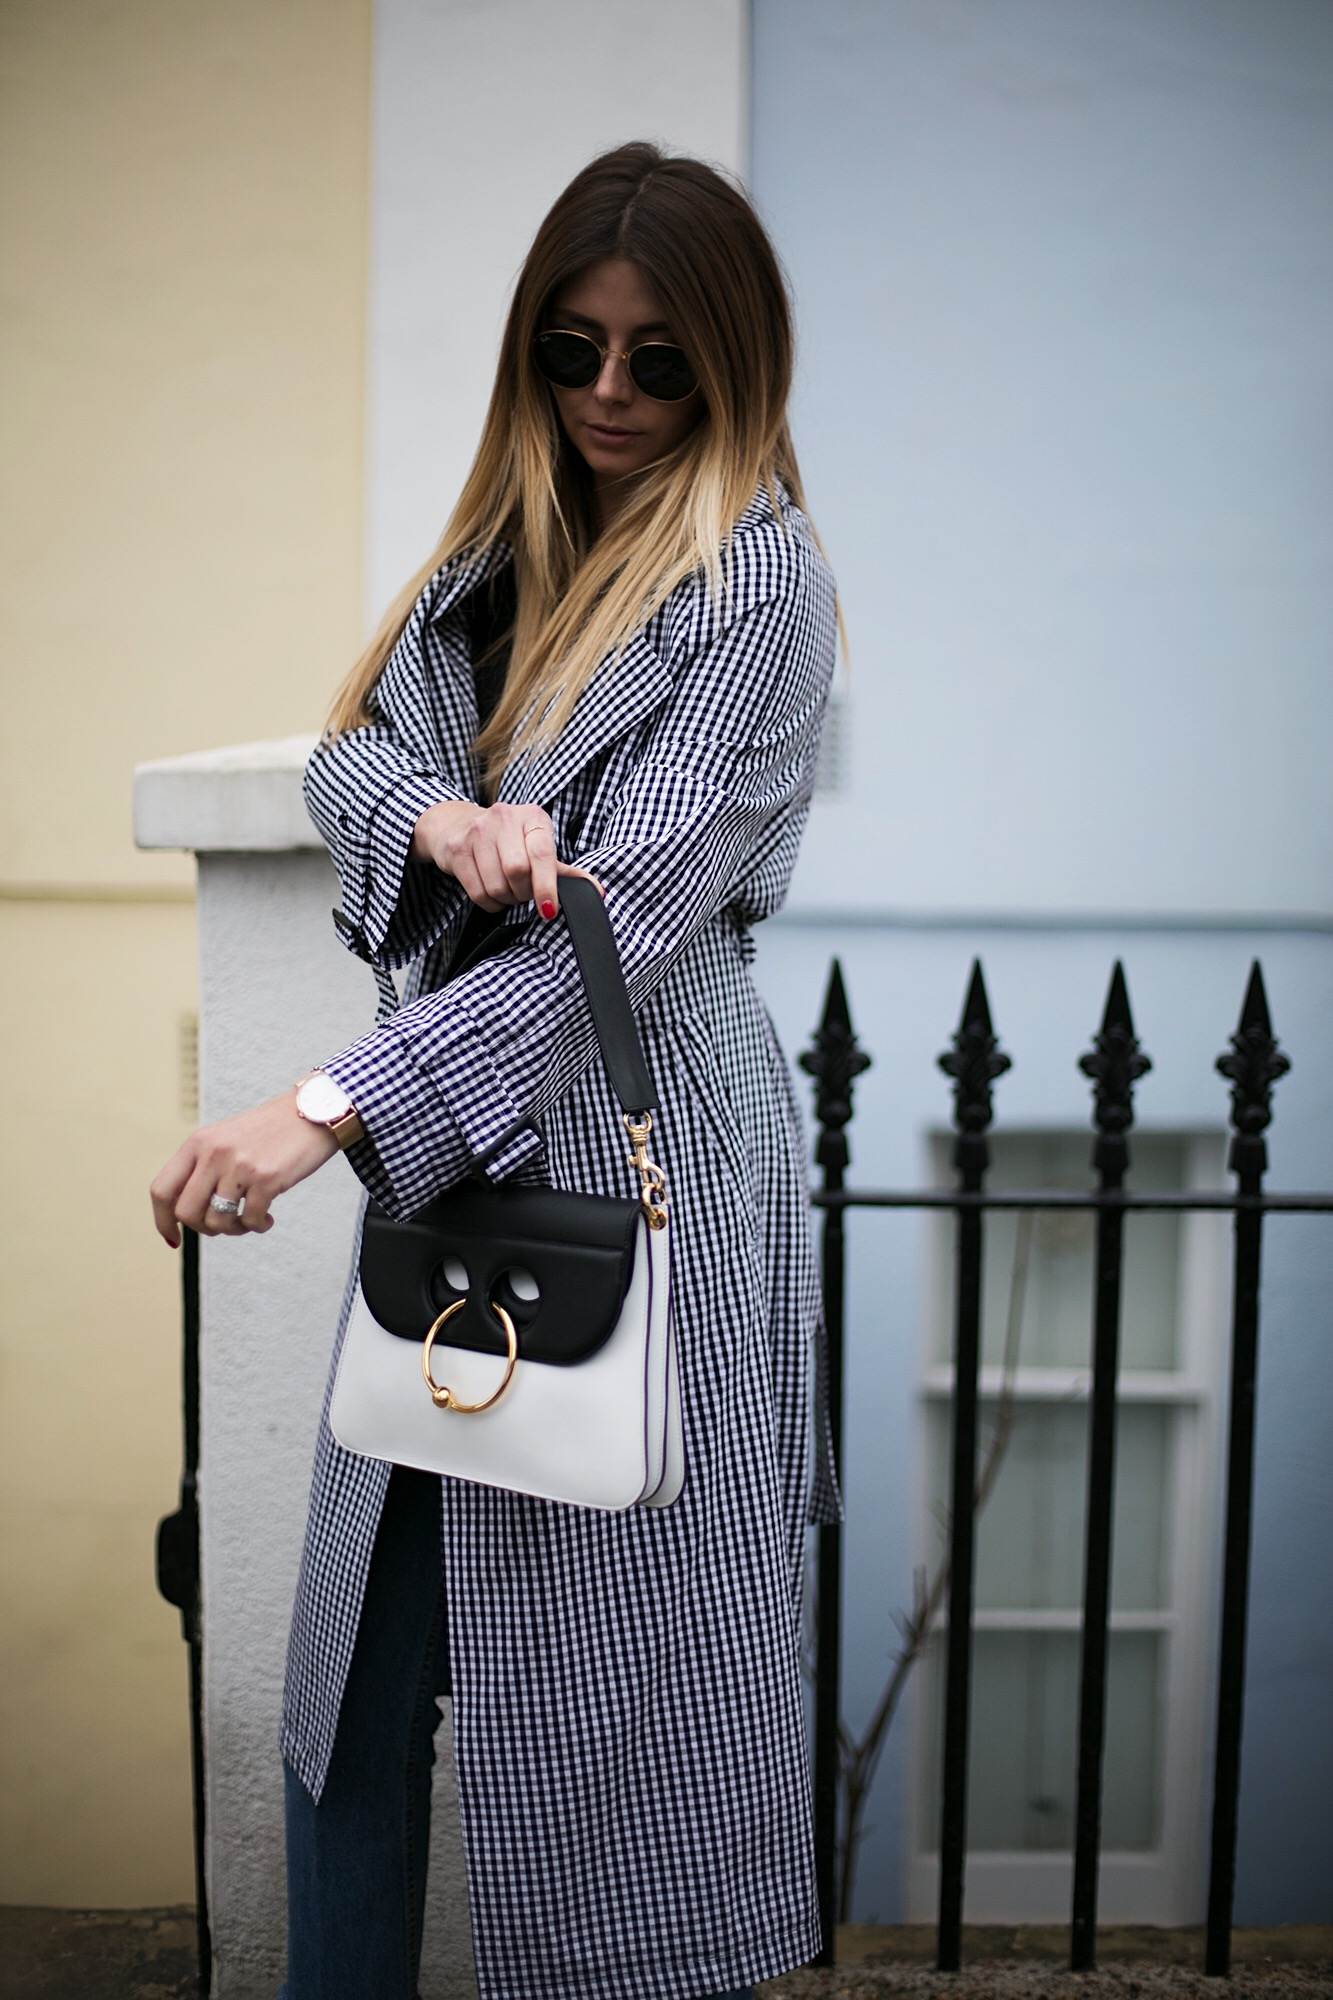 J.W. Anderson Pierce bag, gingham trench coat